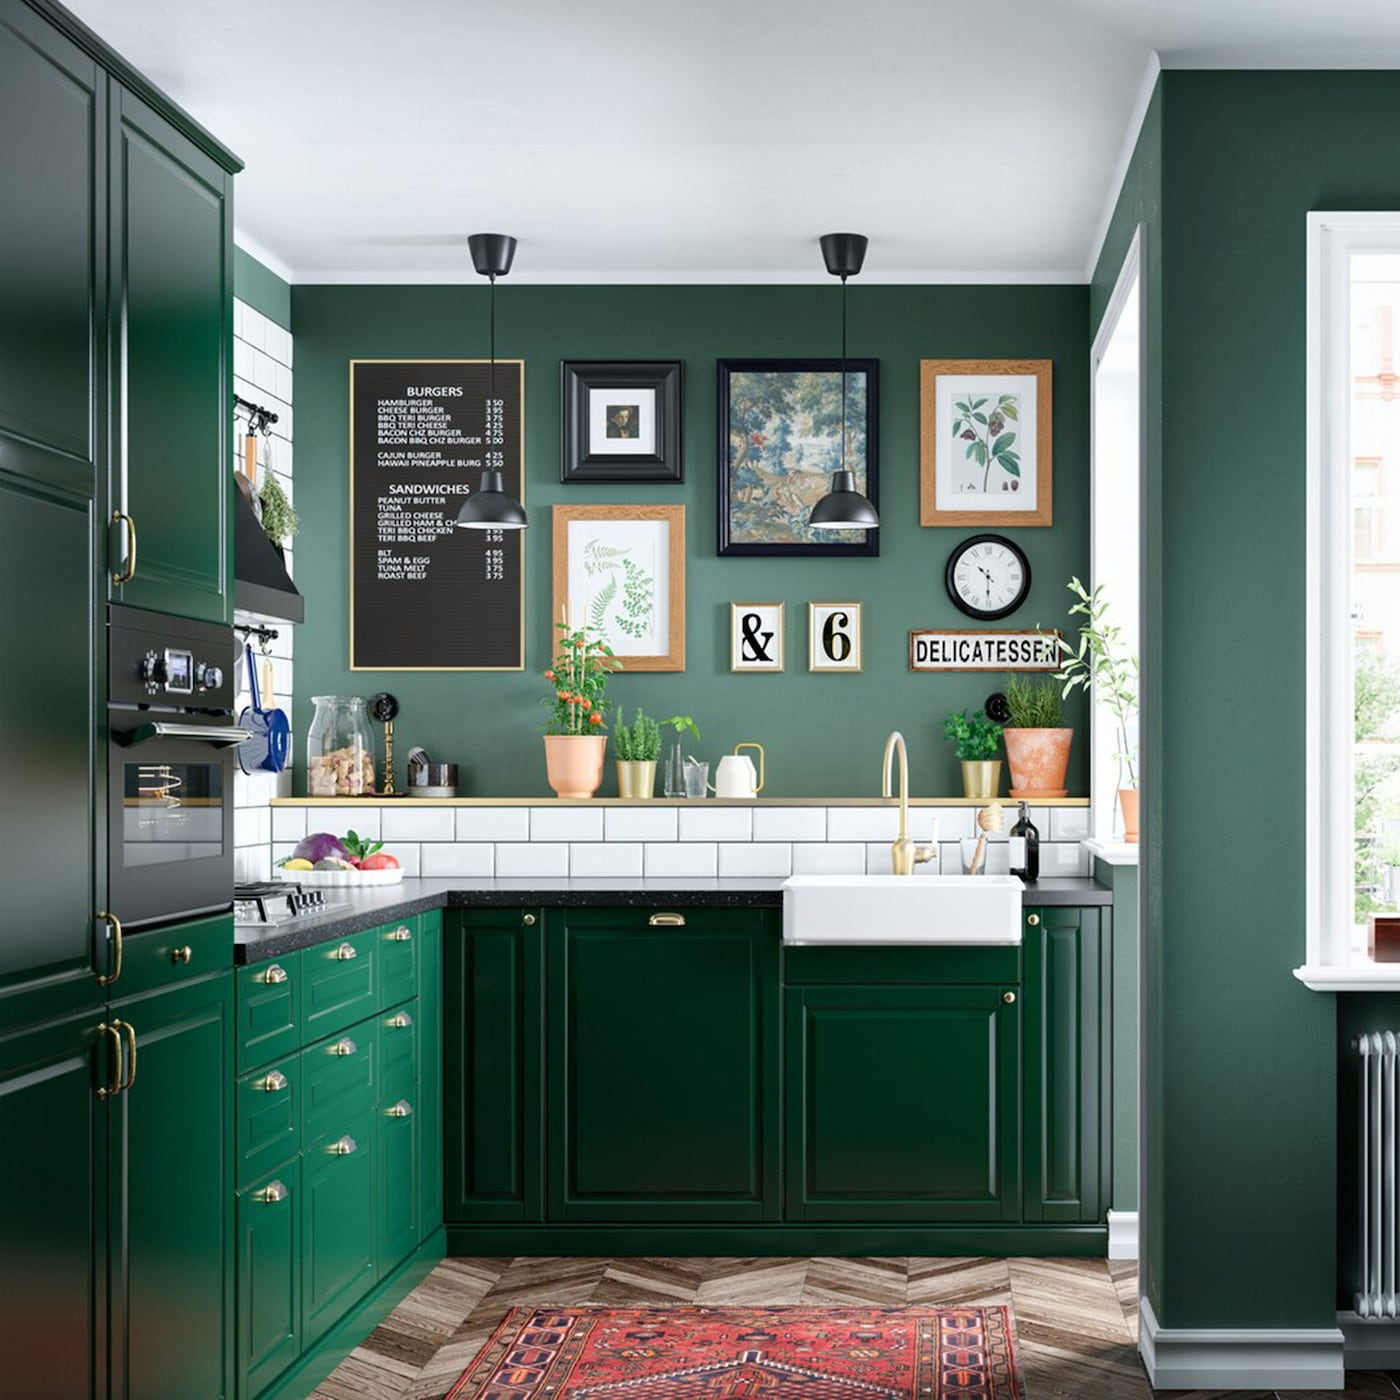 small kitchen storage ideas ikea gallery | A green and fresh BODBYN kitchen - IKEA